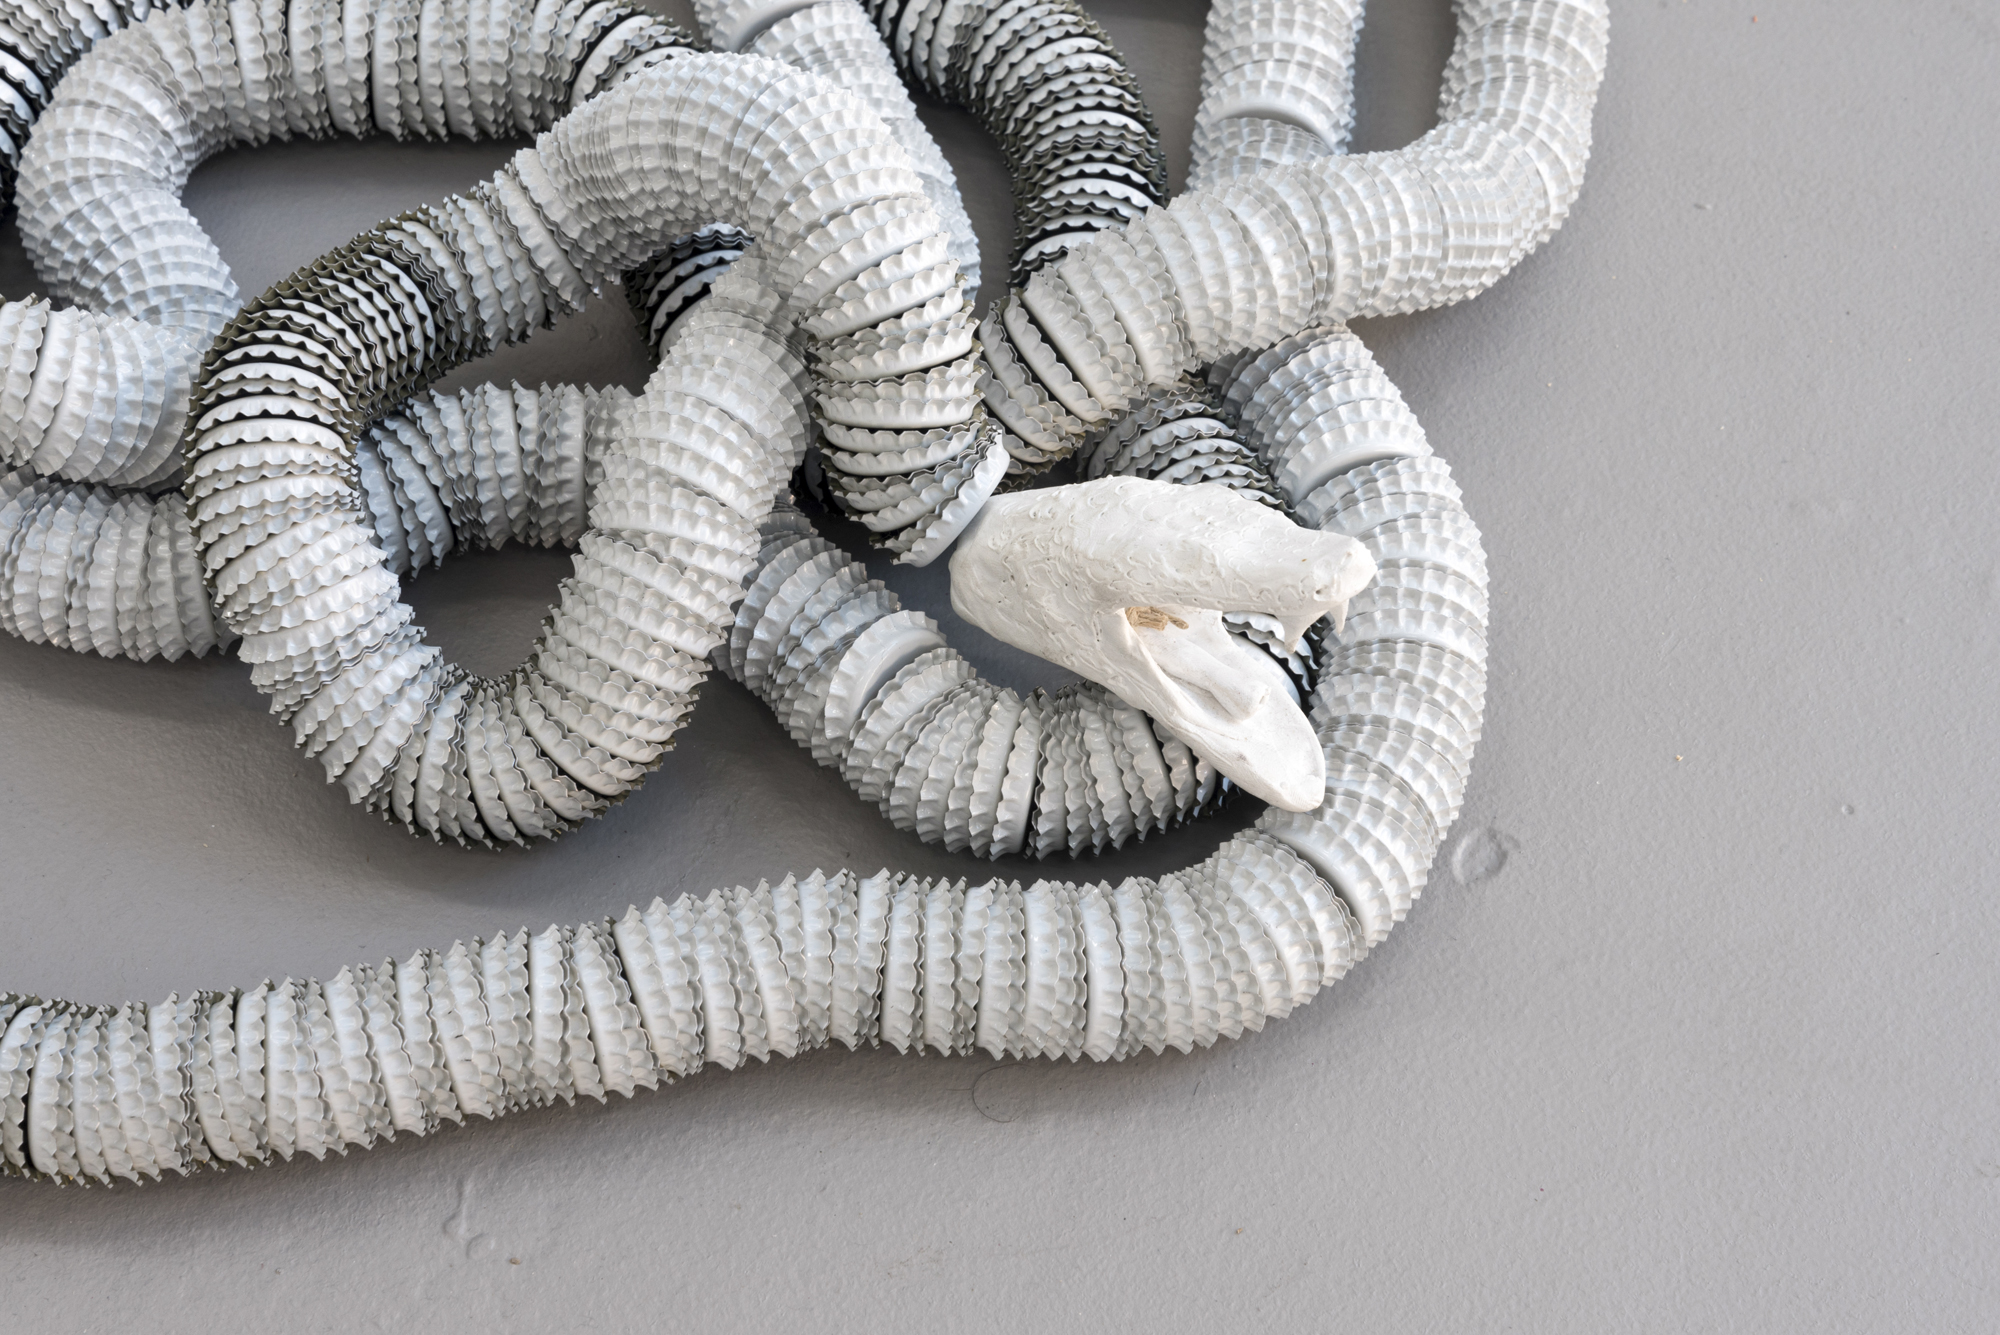 Preparing for the Unknown  (Dream Snake)  2019 polymer clay, hemp string, bottle caps 20 feet long, installation dimensions variable